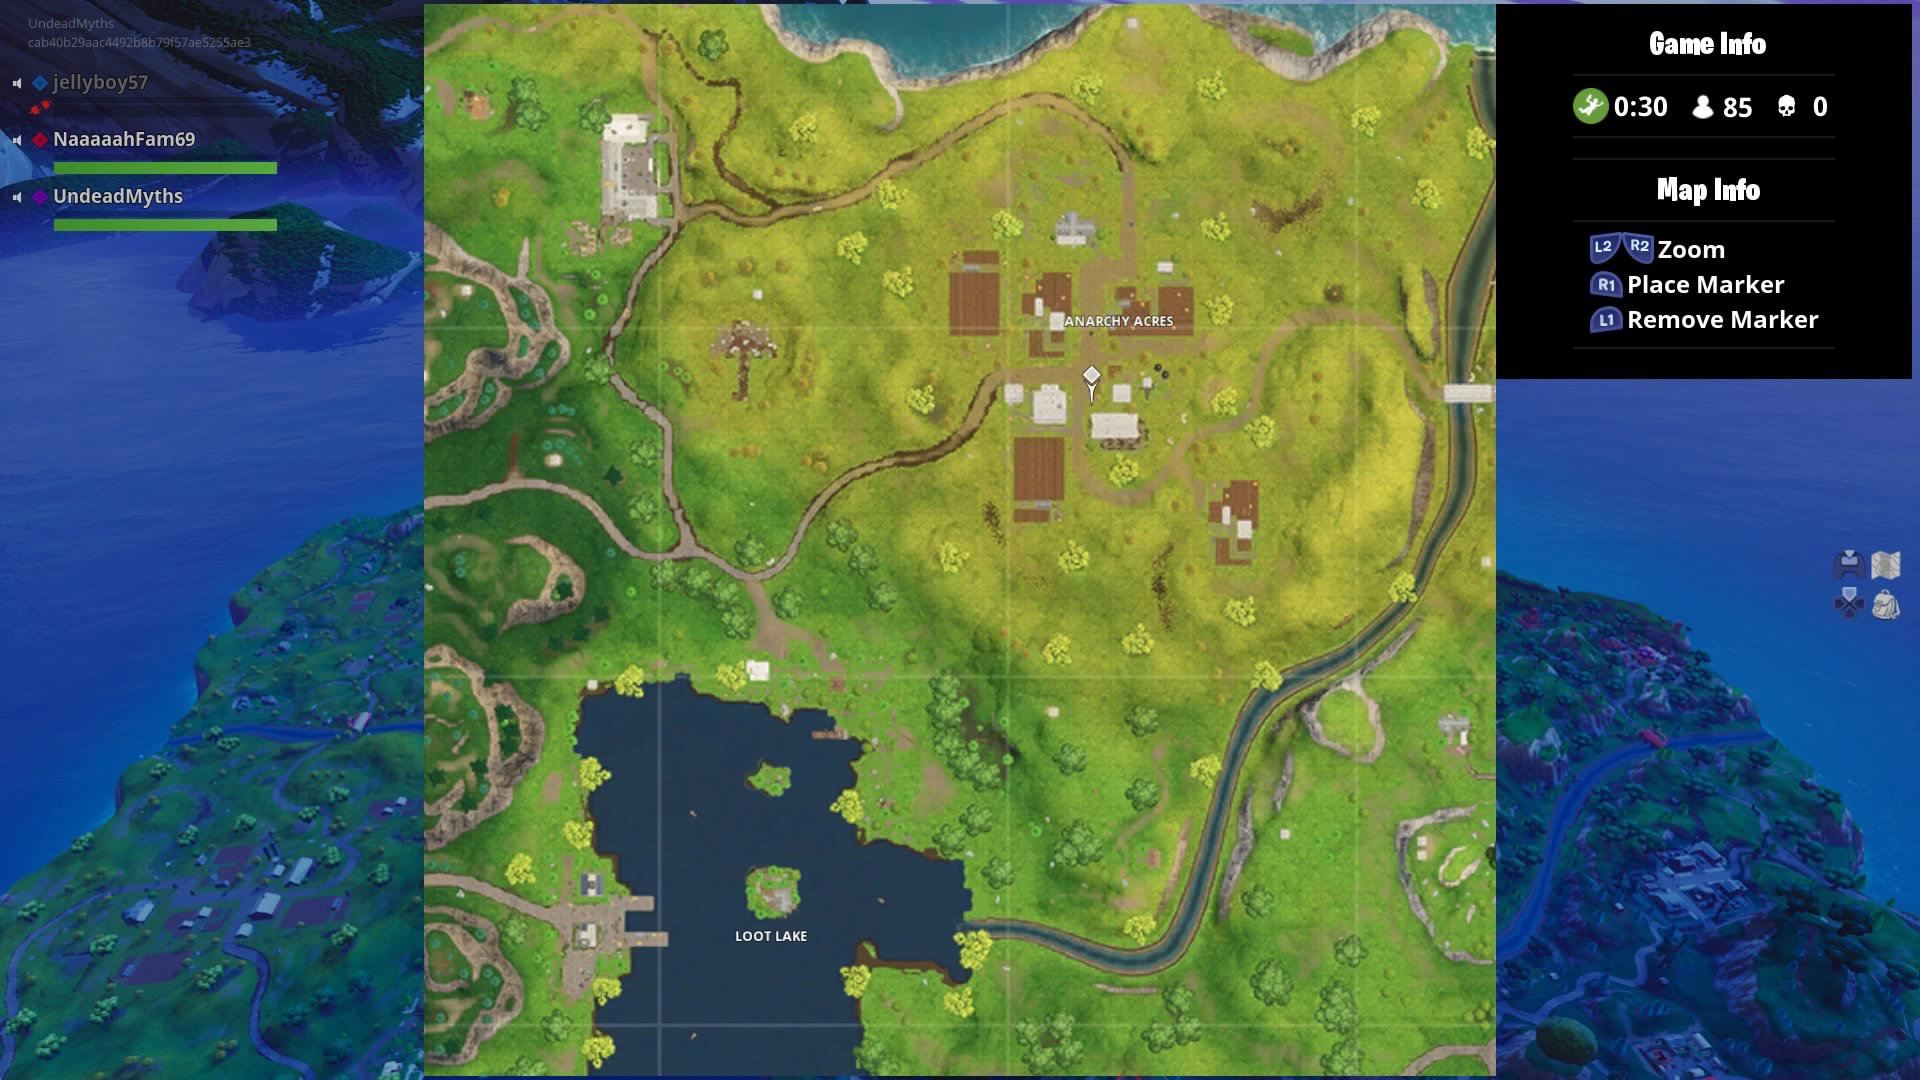 Fortnite anarchy acres chests for week 6 challenge where to find but in order to complete all the fortnite week 6 challenges youre going to have to find and loot seven chests in total in anarchy acres which lies in the gumiabroncs Images